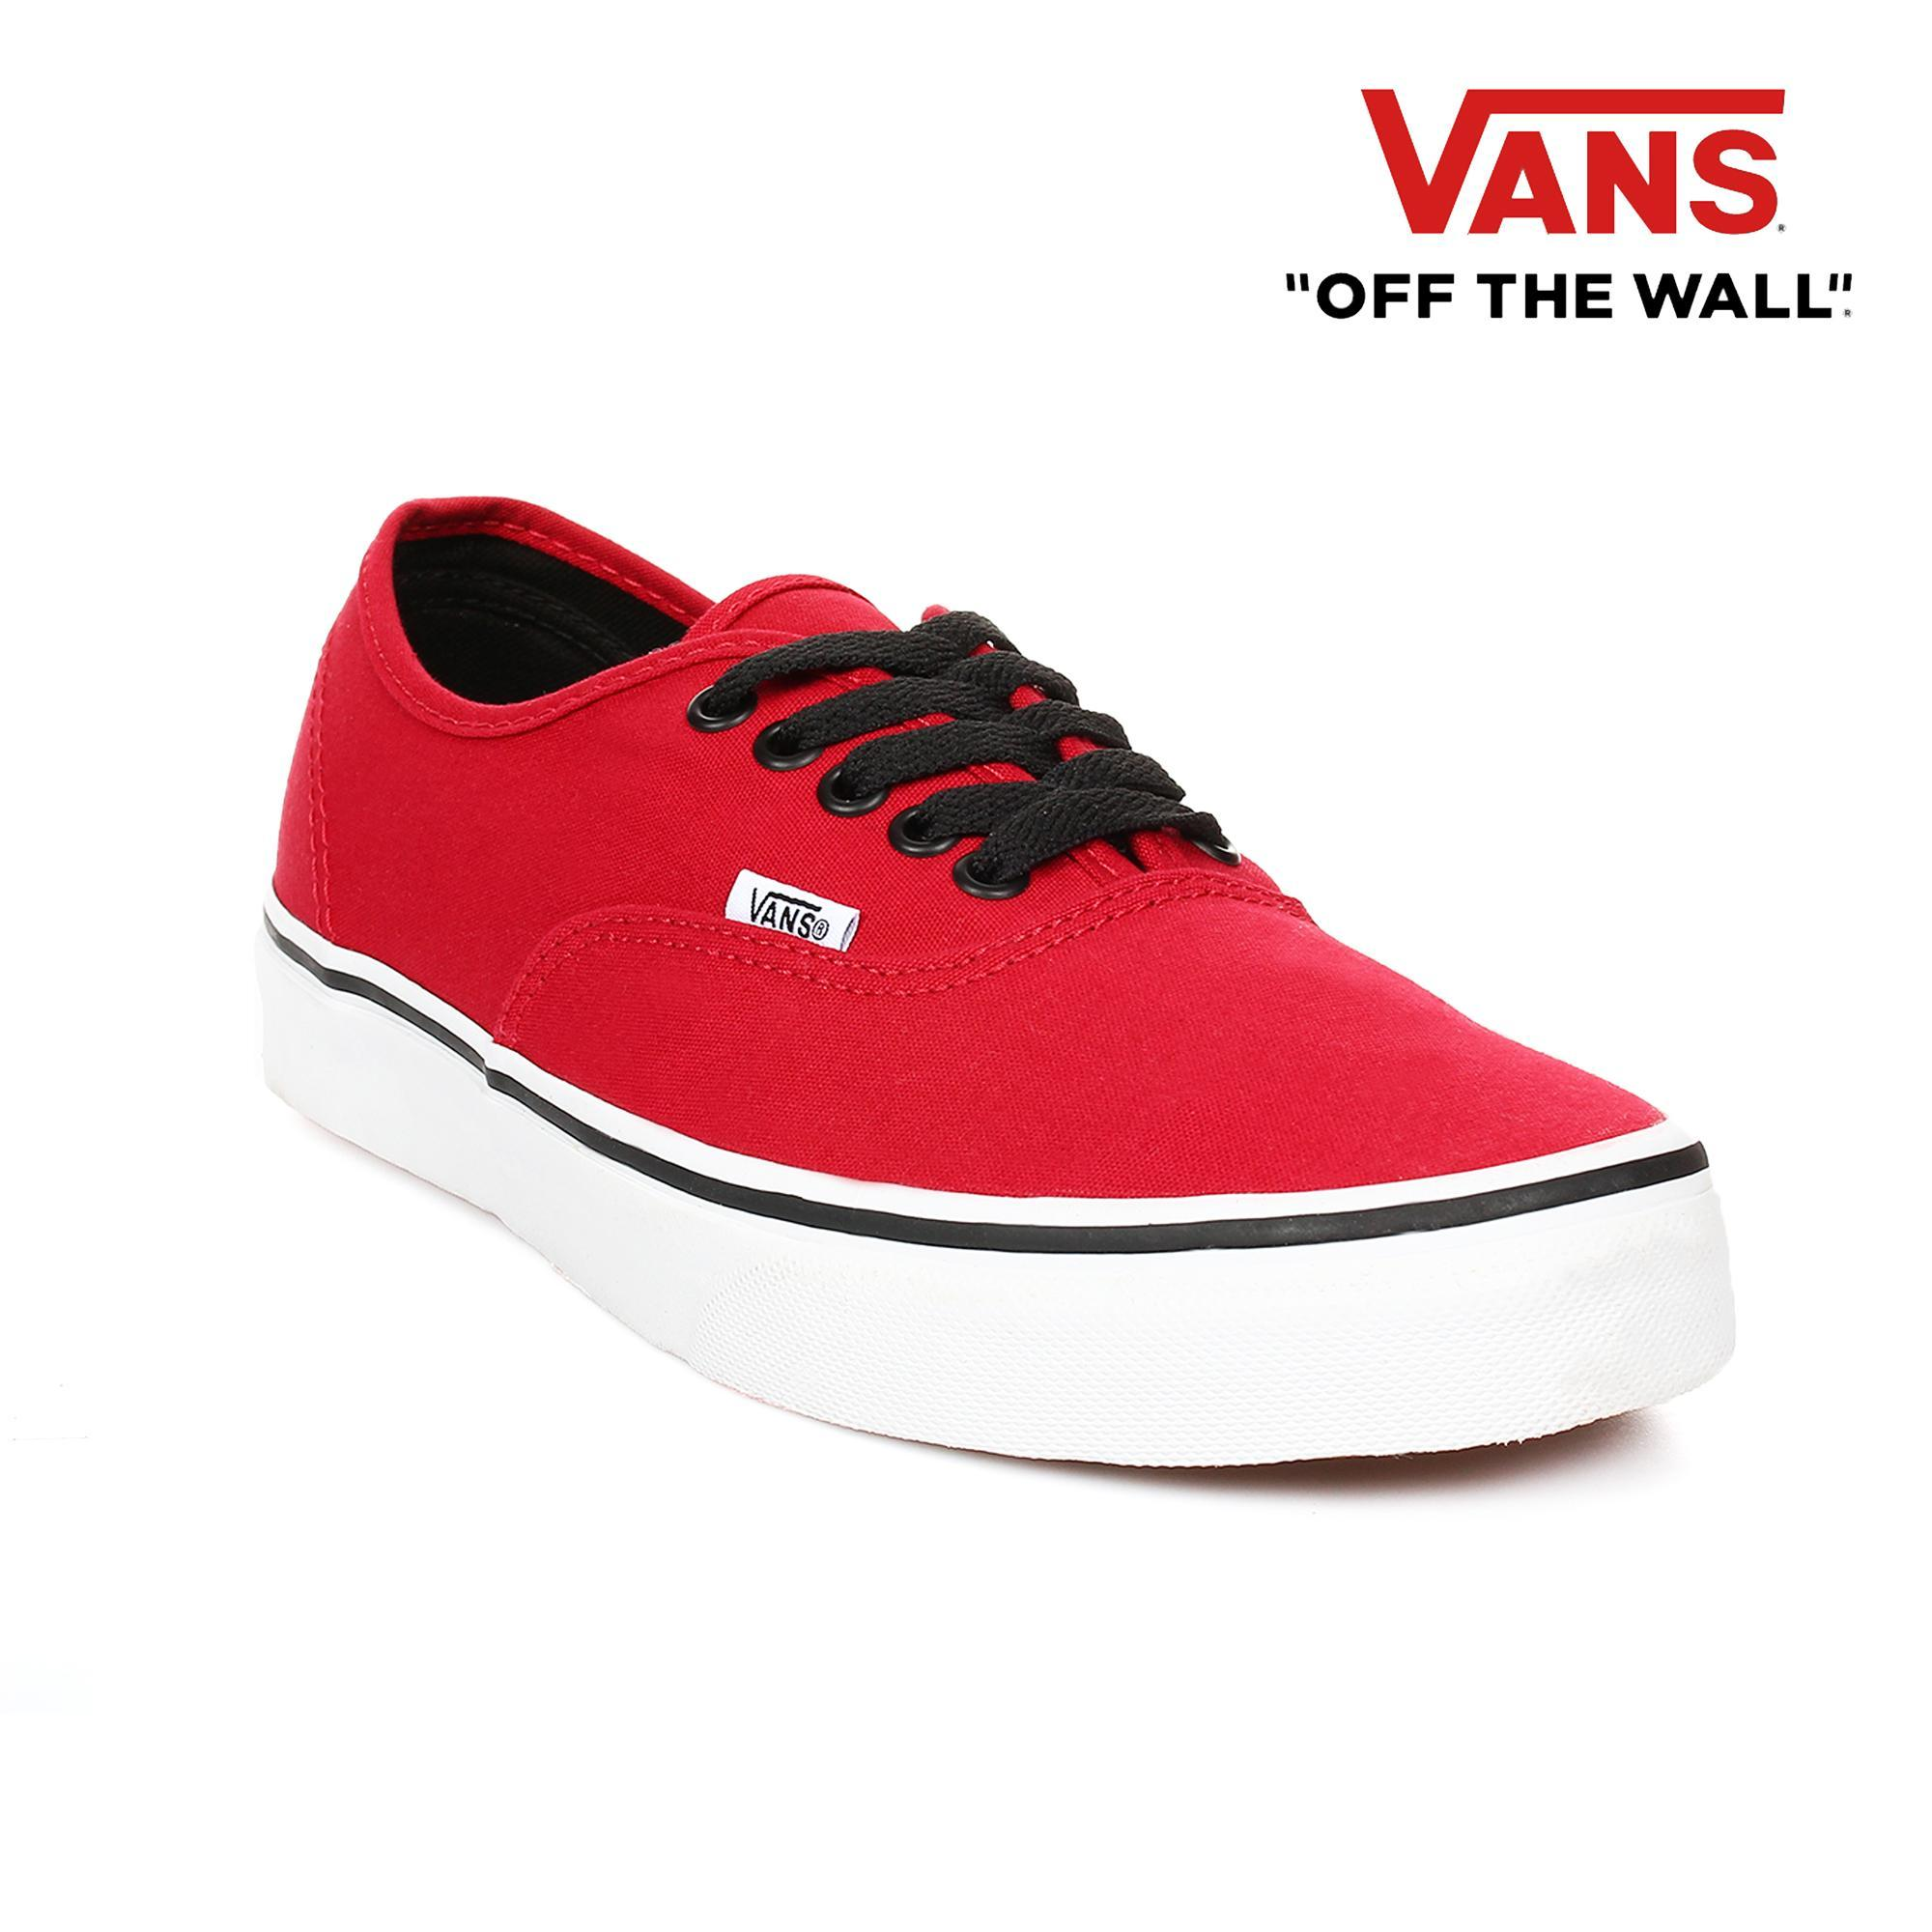 Vans Shoes for Men Philippines - Vans Men s Shoes for sale - prices ... a0e38abea